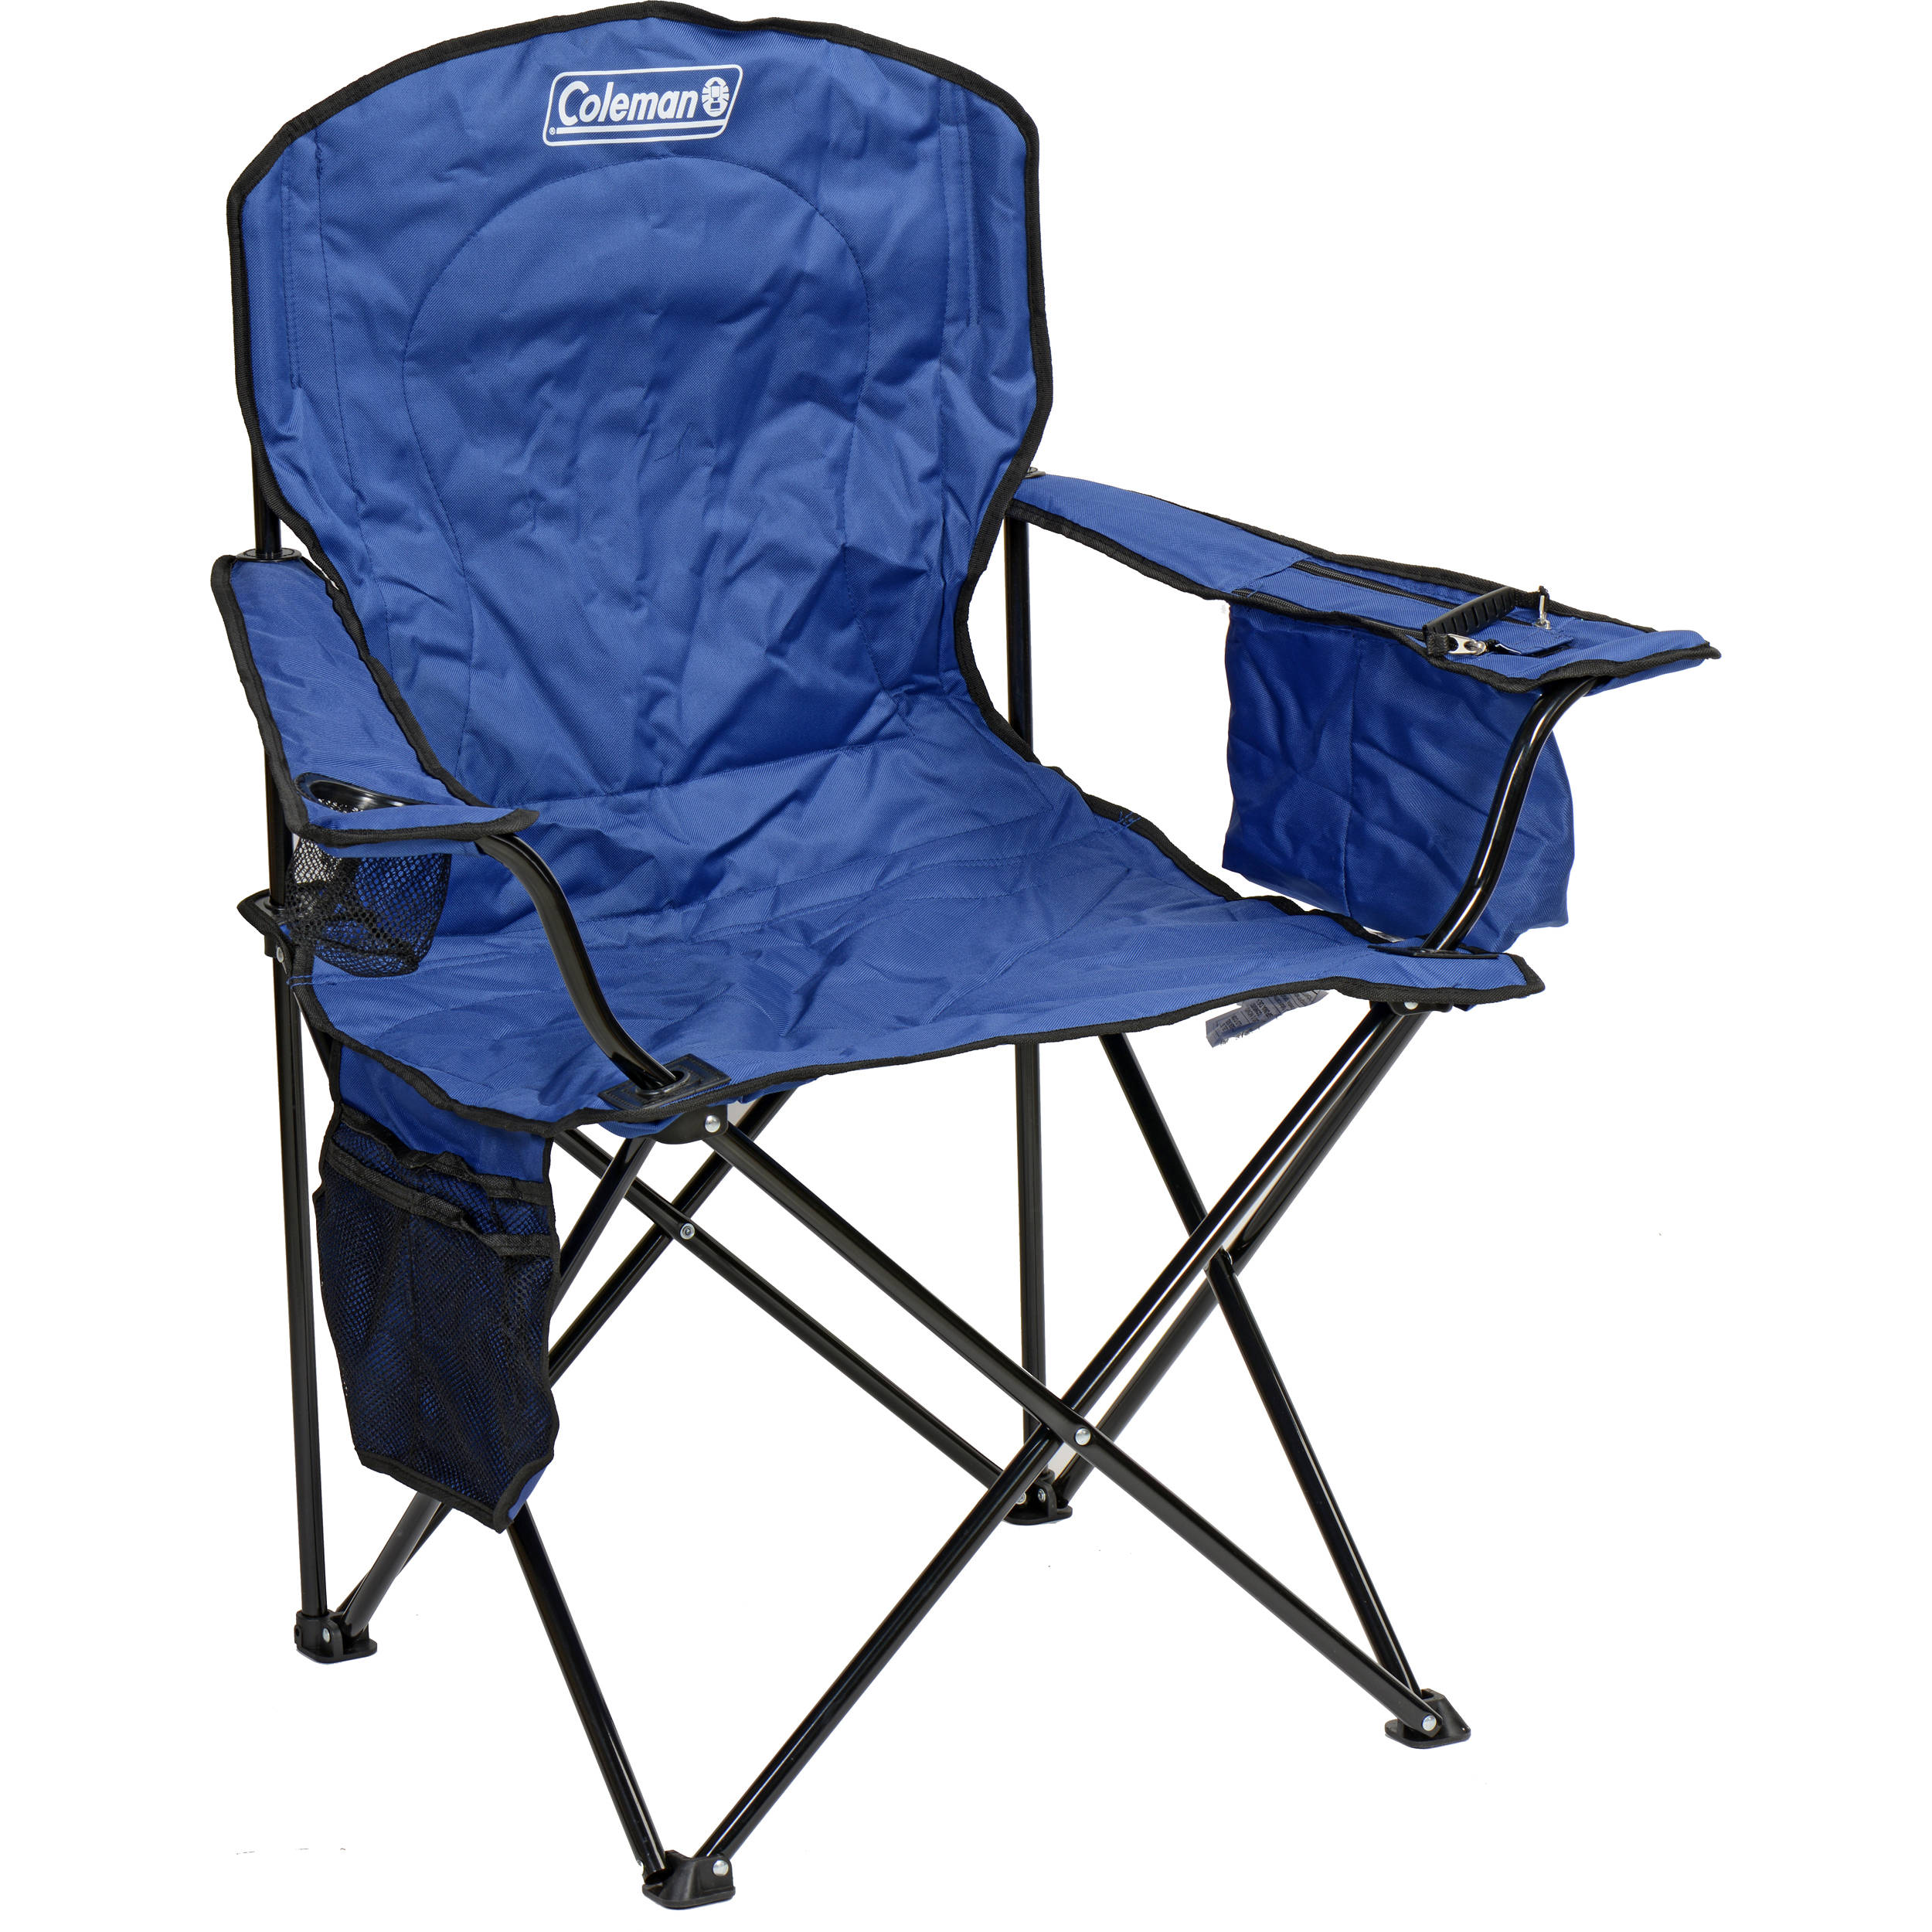 Phenomenal Coleman Oversized Quad Chair With Cooler Blue Alphanode Cool Chair Designs And Ideas Alphanodeonline